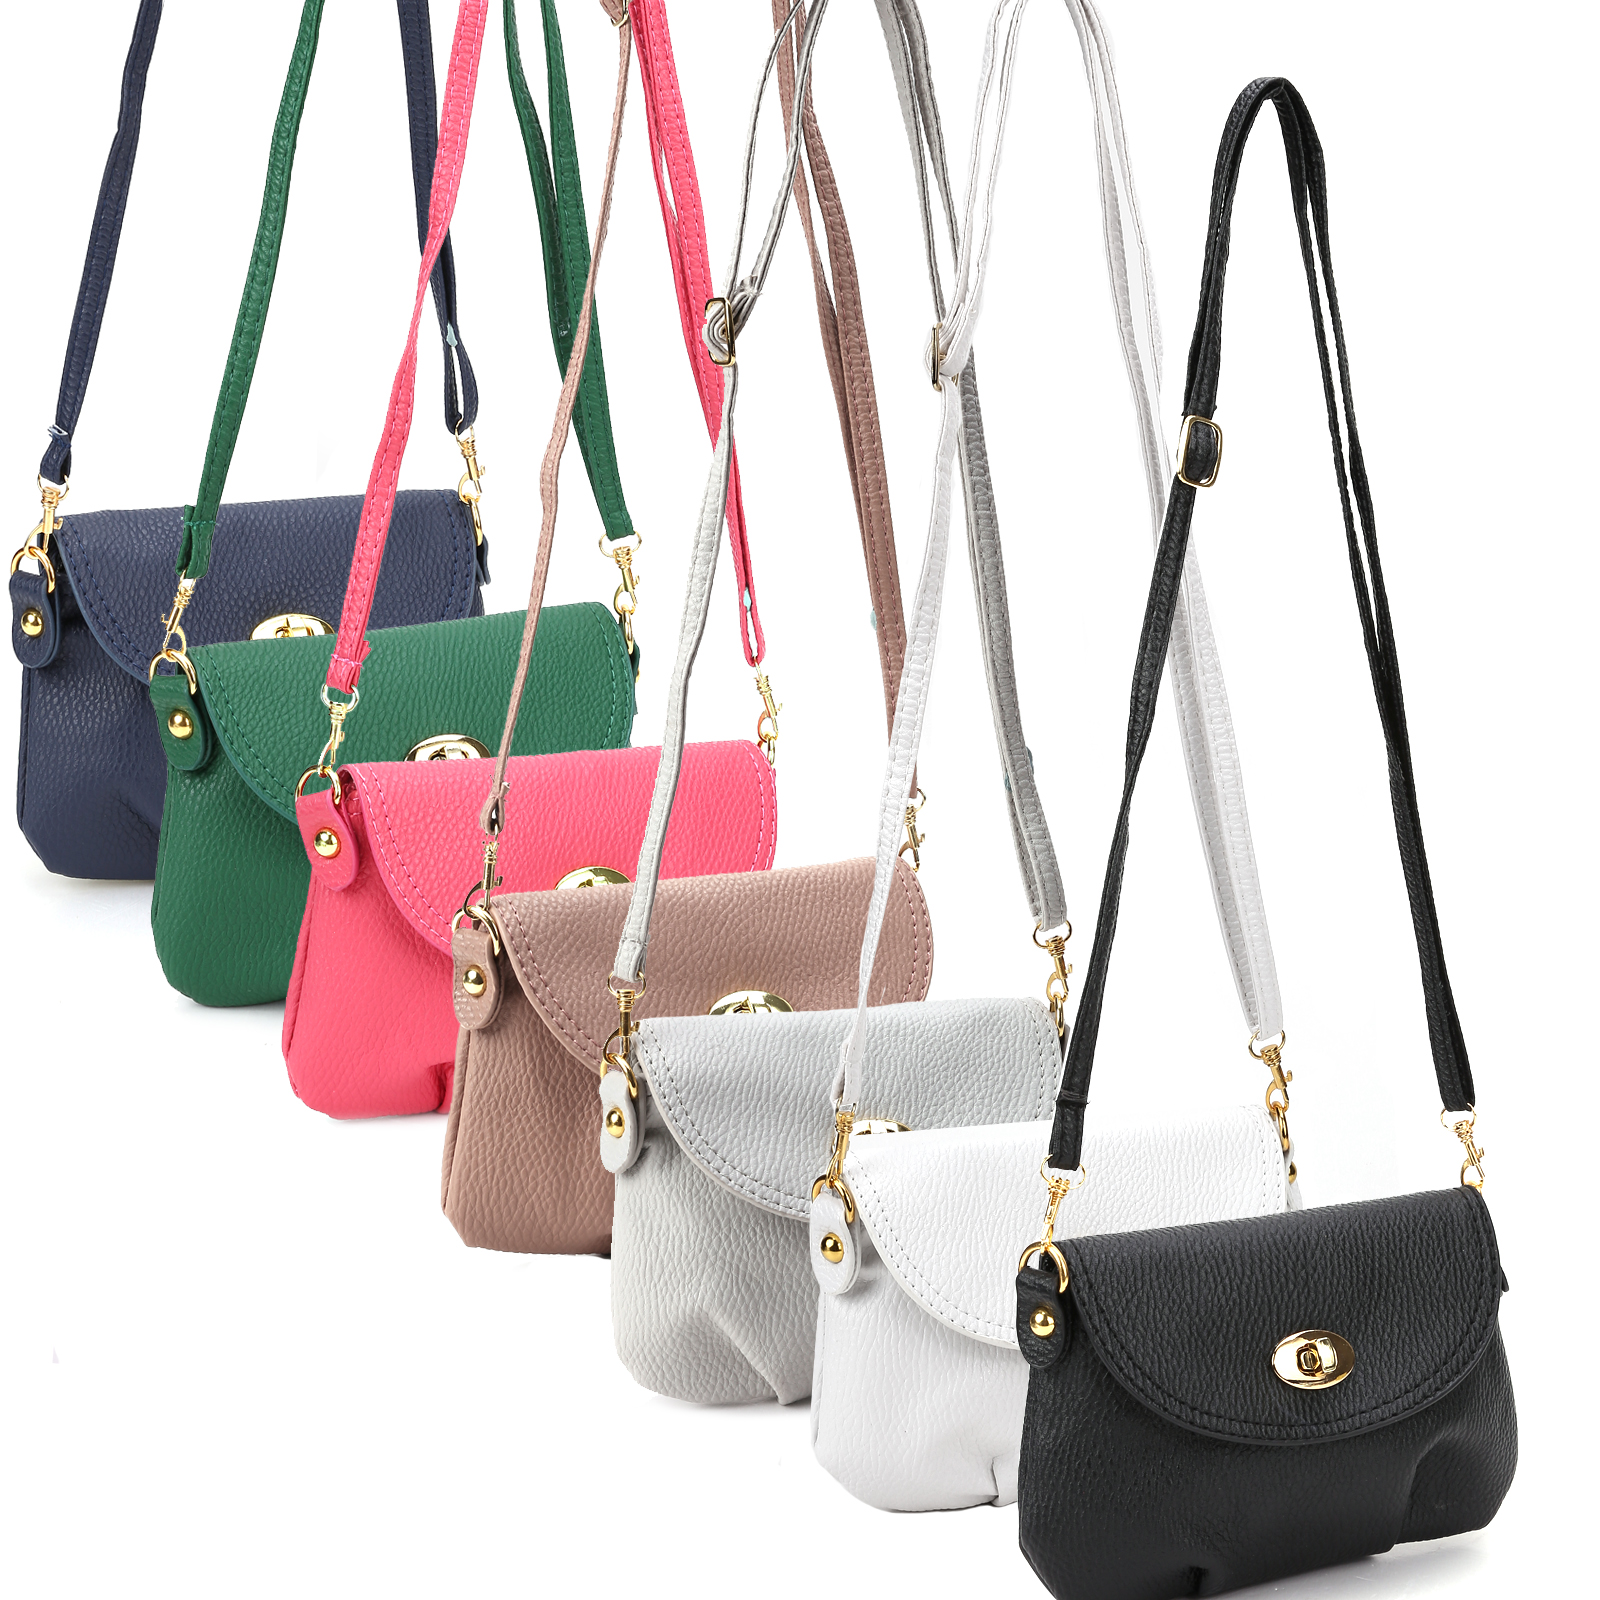 Ladies Small Satchel Leather Handbag Crossbody Shoulder Messenger Totes Bags 22e54484f2aea